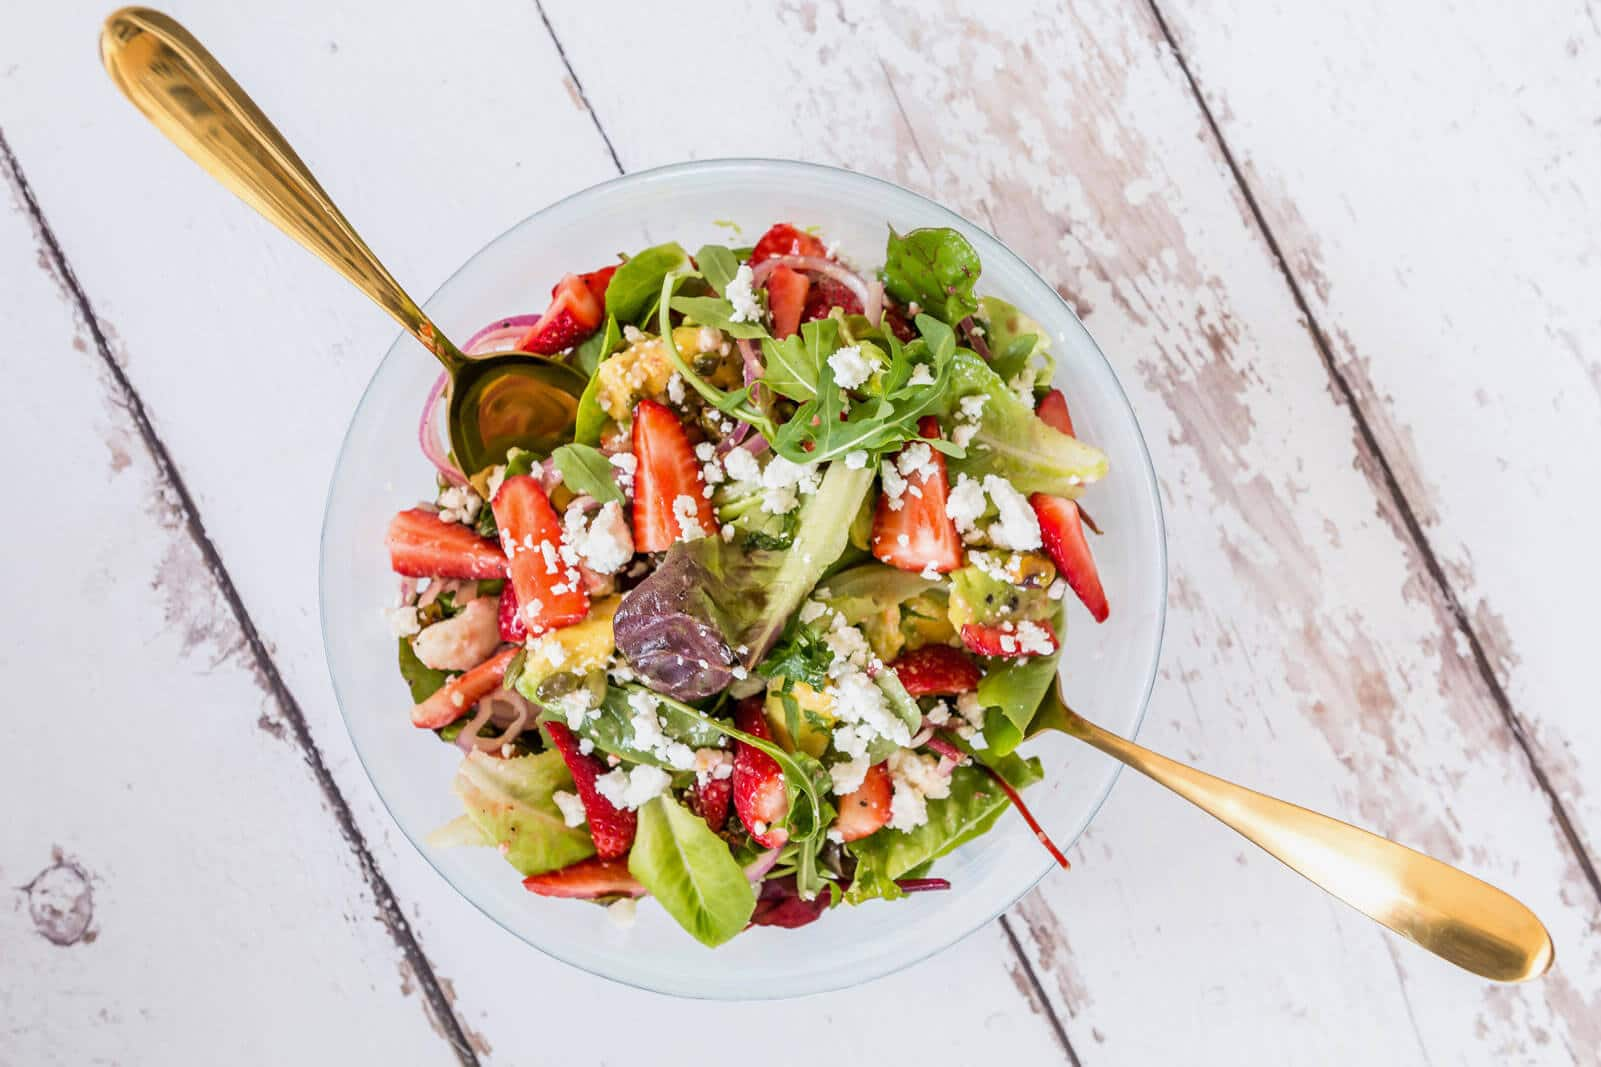 Looking for a gorgeousand healthy salad for Spring? This spring salad with green leaves, strawberries and avocado is the ideal recipe to try right now! great healthy sauce and fresh ingredients that's ideal for any occasion!